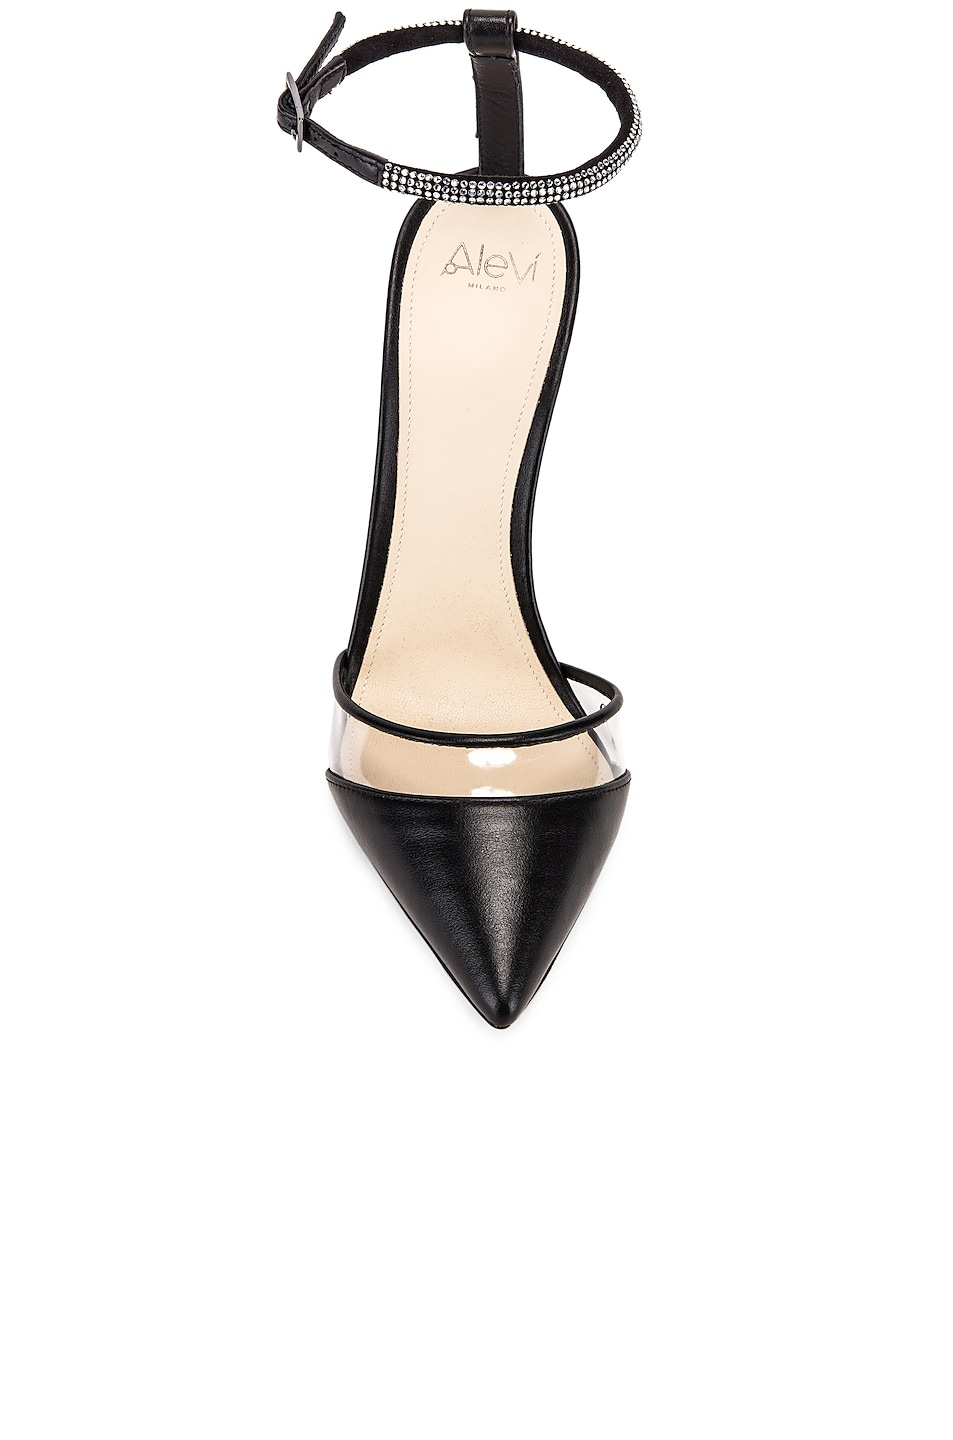 Image 4 of ALEVI Milano Alevi Alice Heel in Campari Black